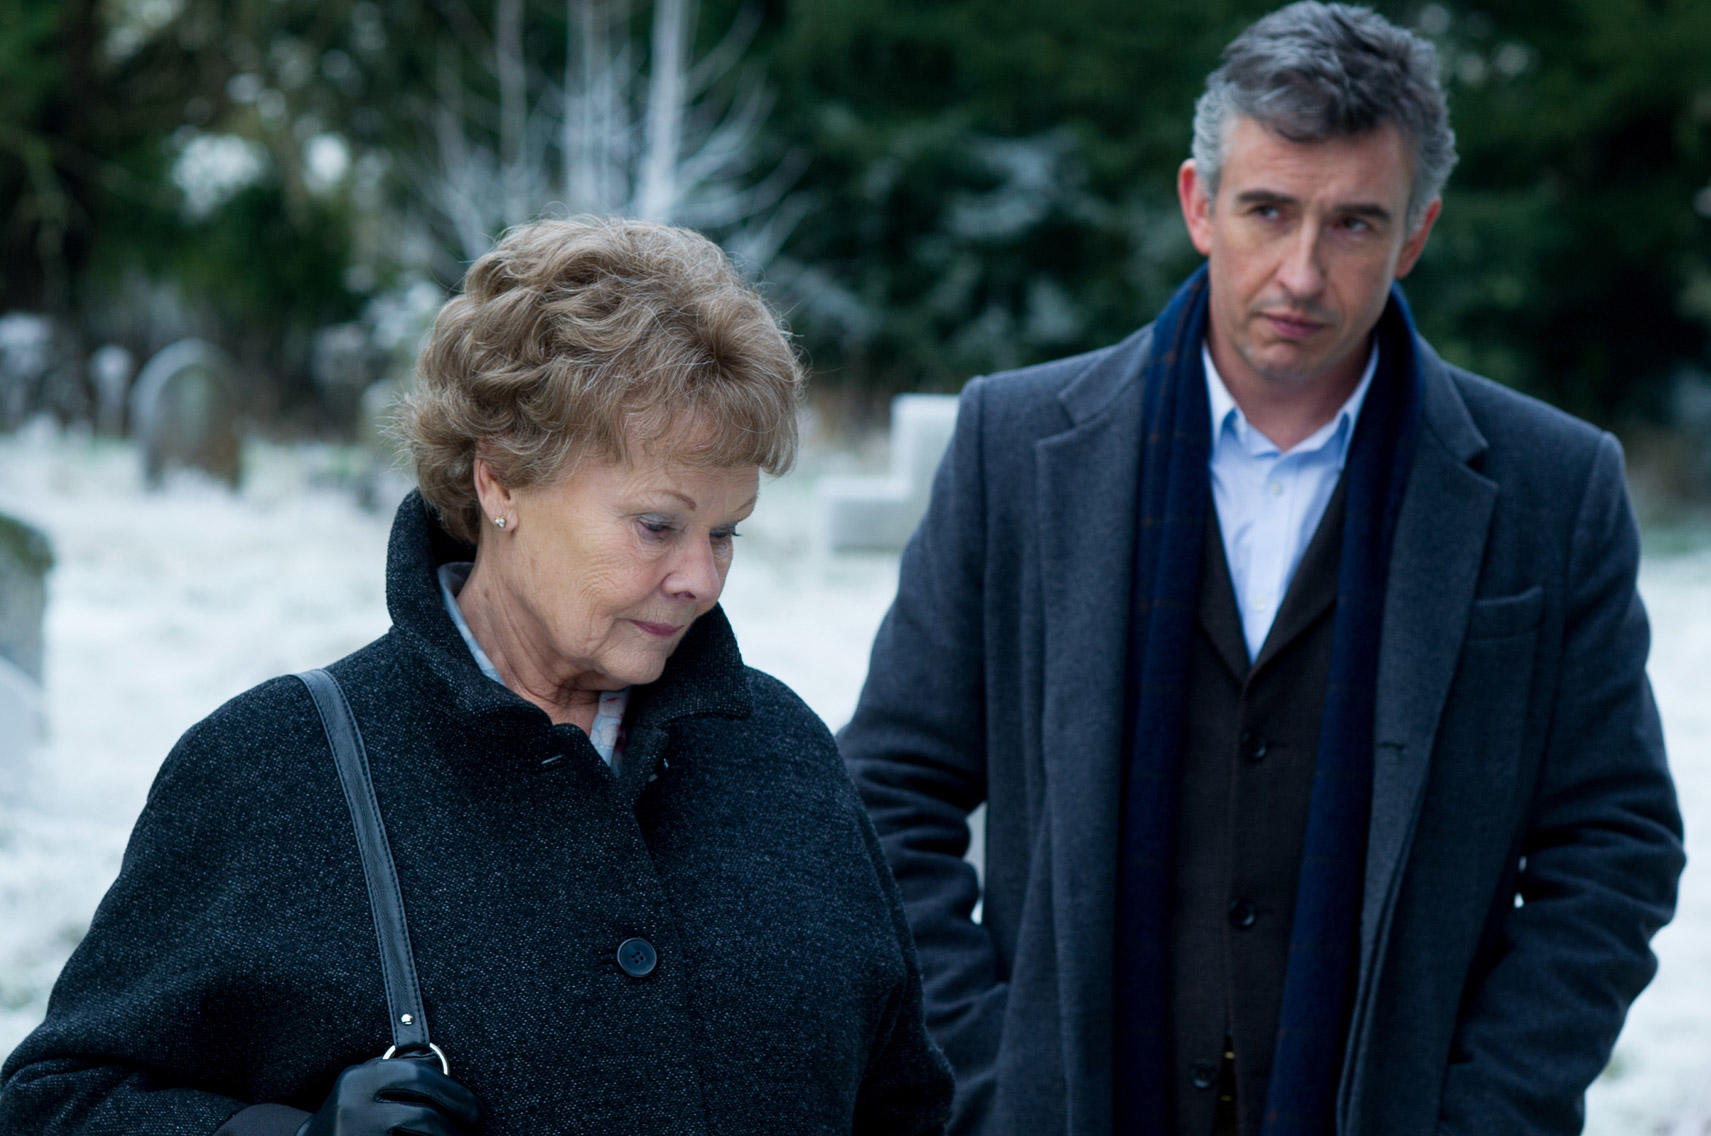 Judi Dench and Steve Coogan in